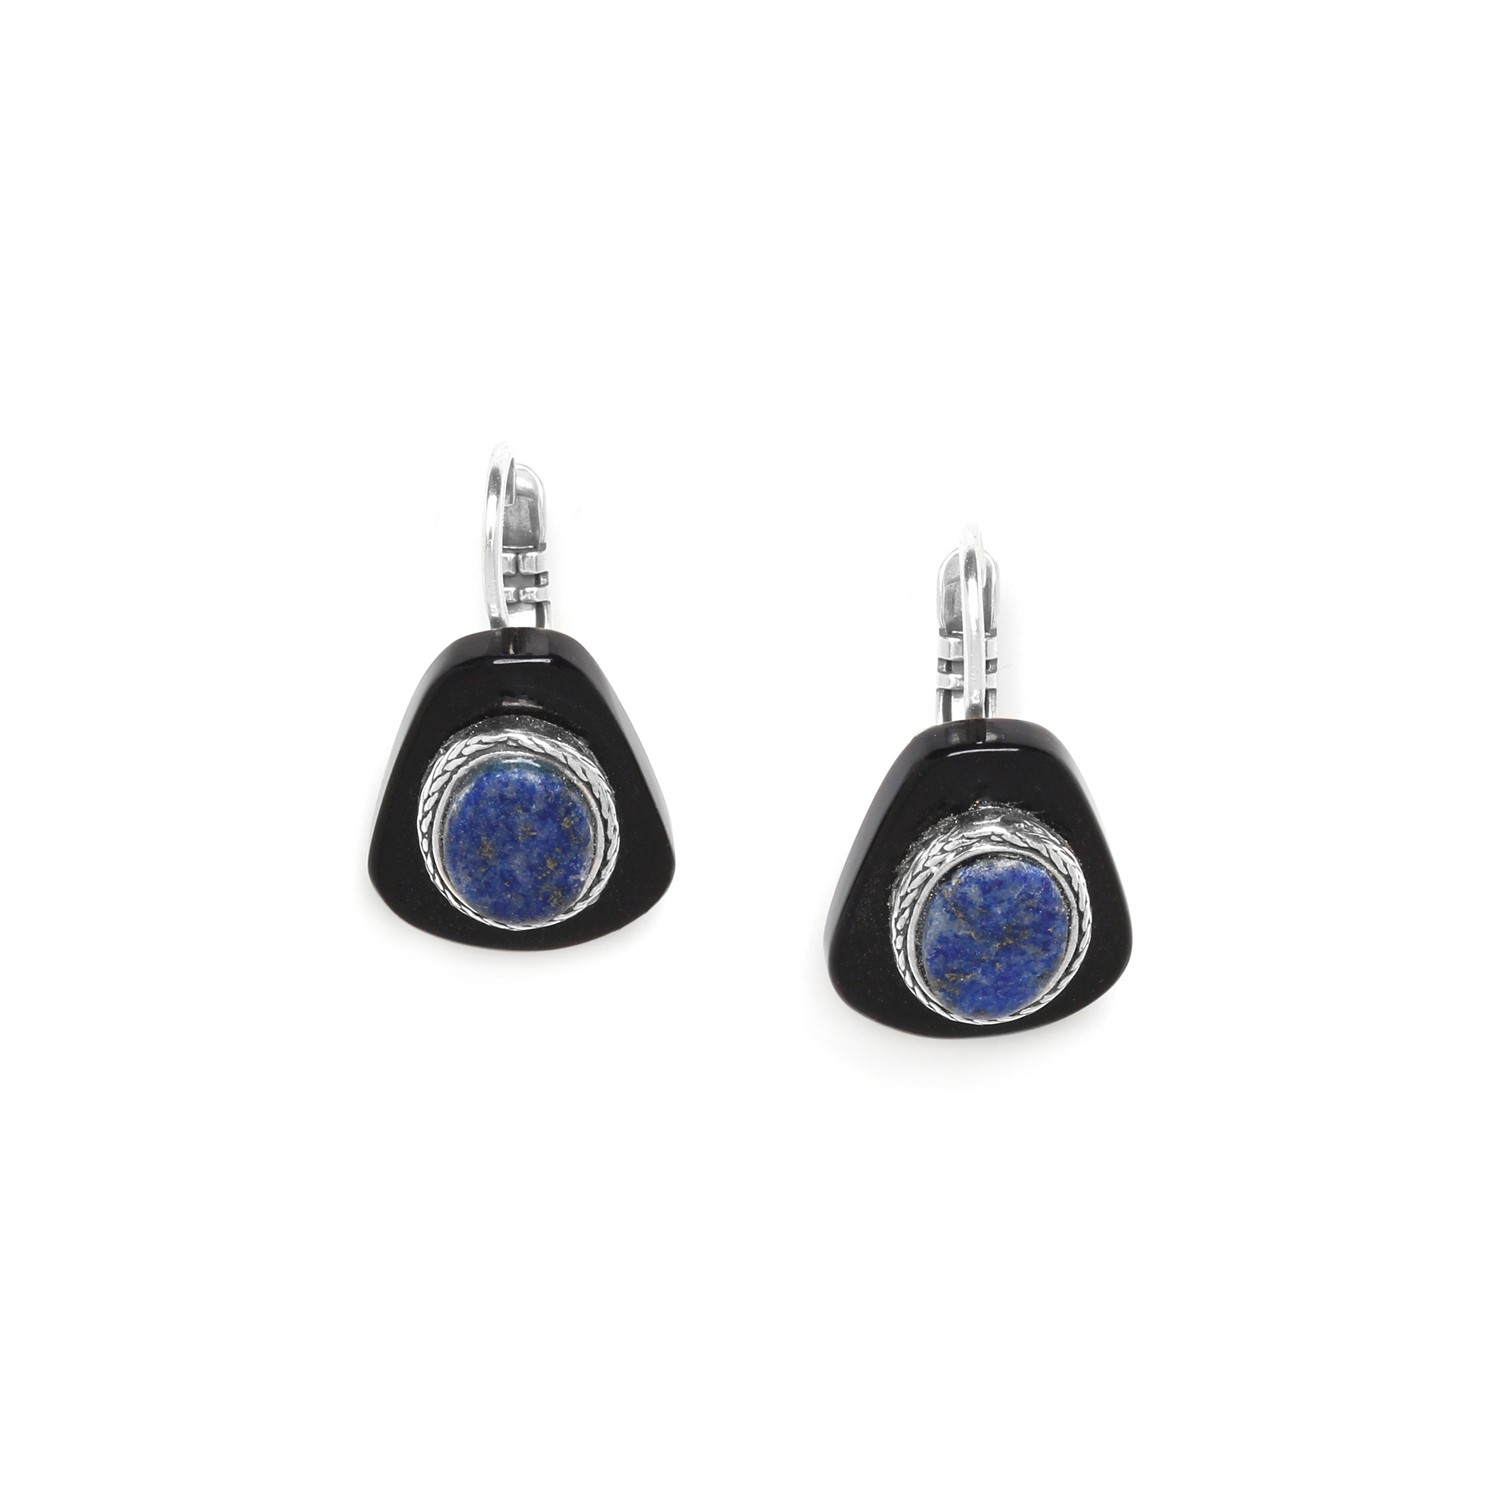 KABYLIE horn french hook earrings